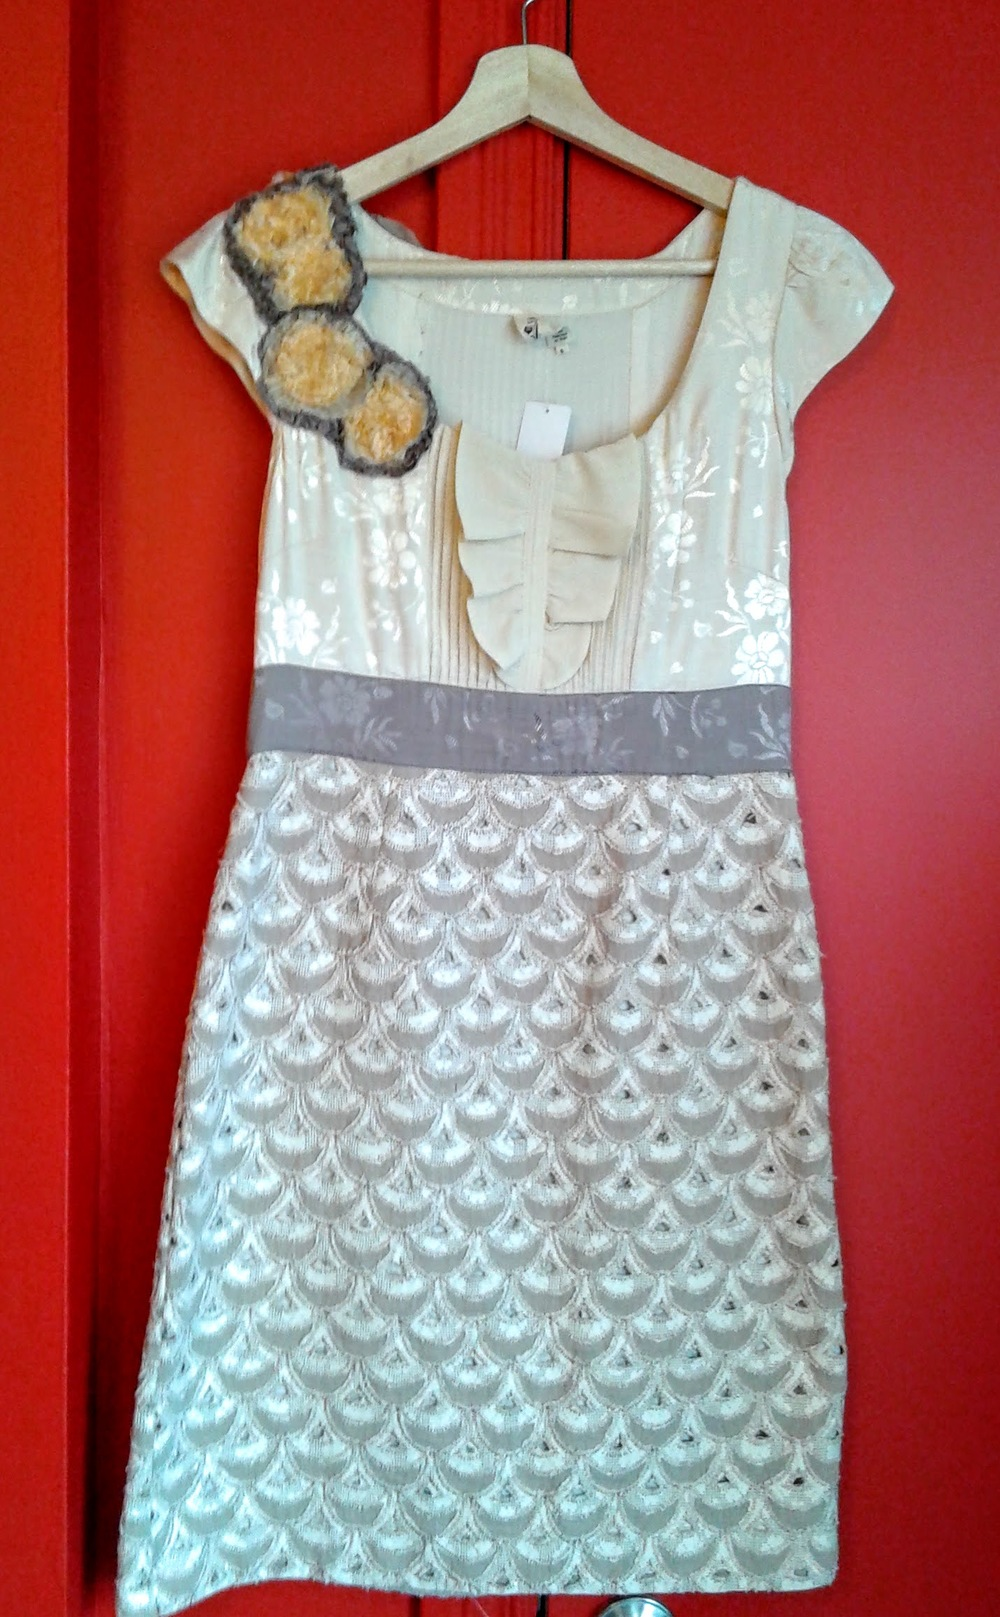 Floreat dress; Size 6, $42